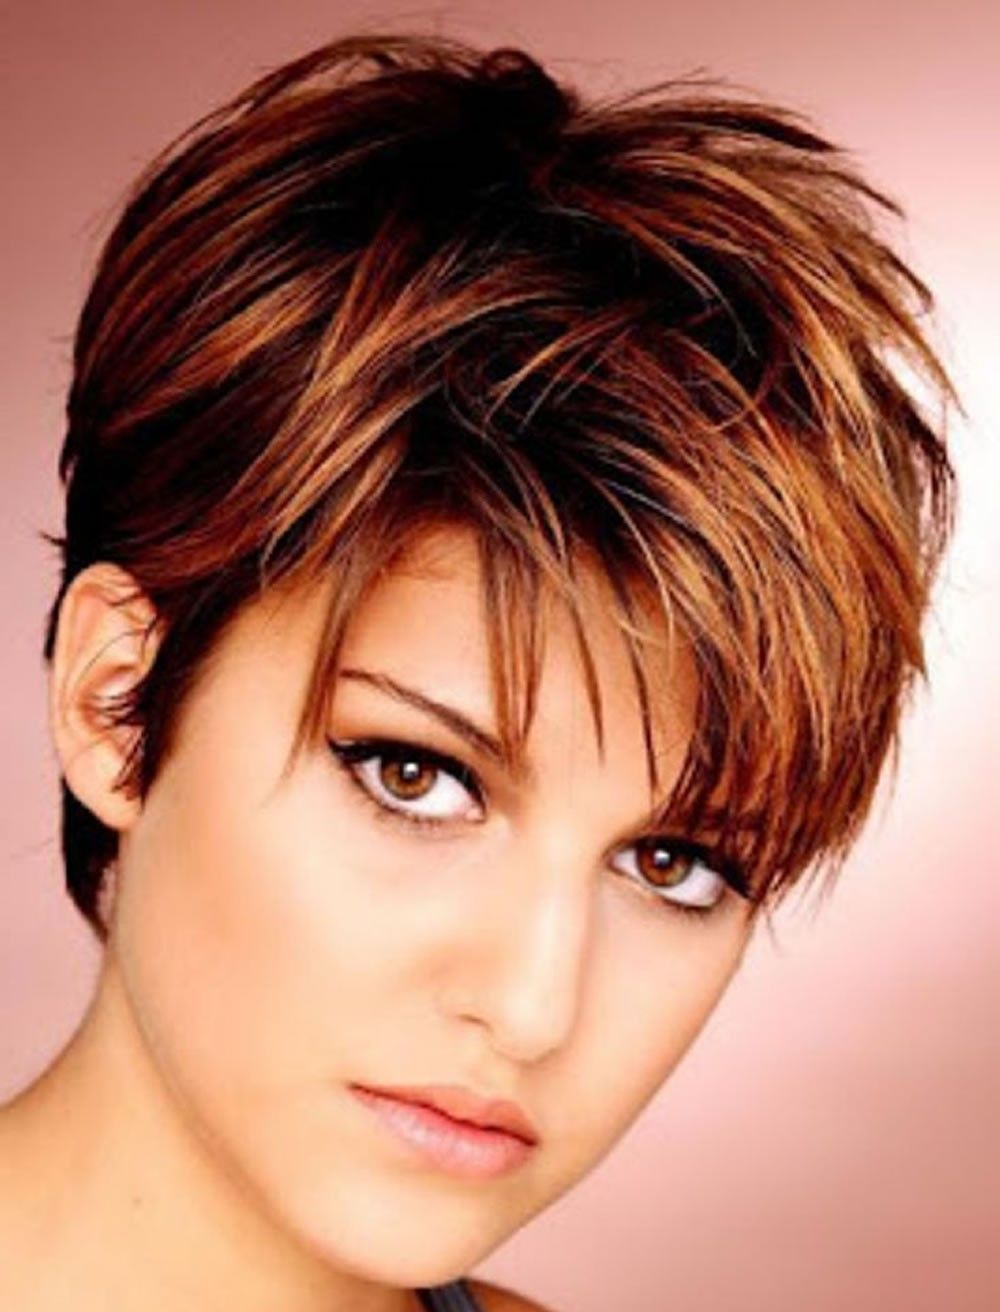 Short Haircuts For Round Faces And Thin Hair Over 50 Archives Very Short Bob Hairstyles Short Hair Styles For Round Faces Haircut For Thick Hair